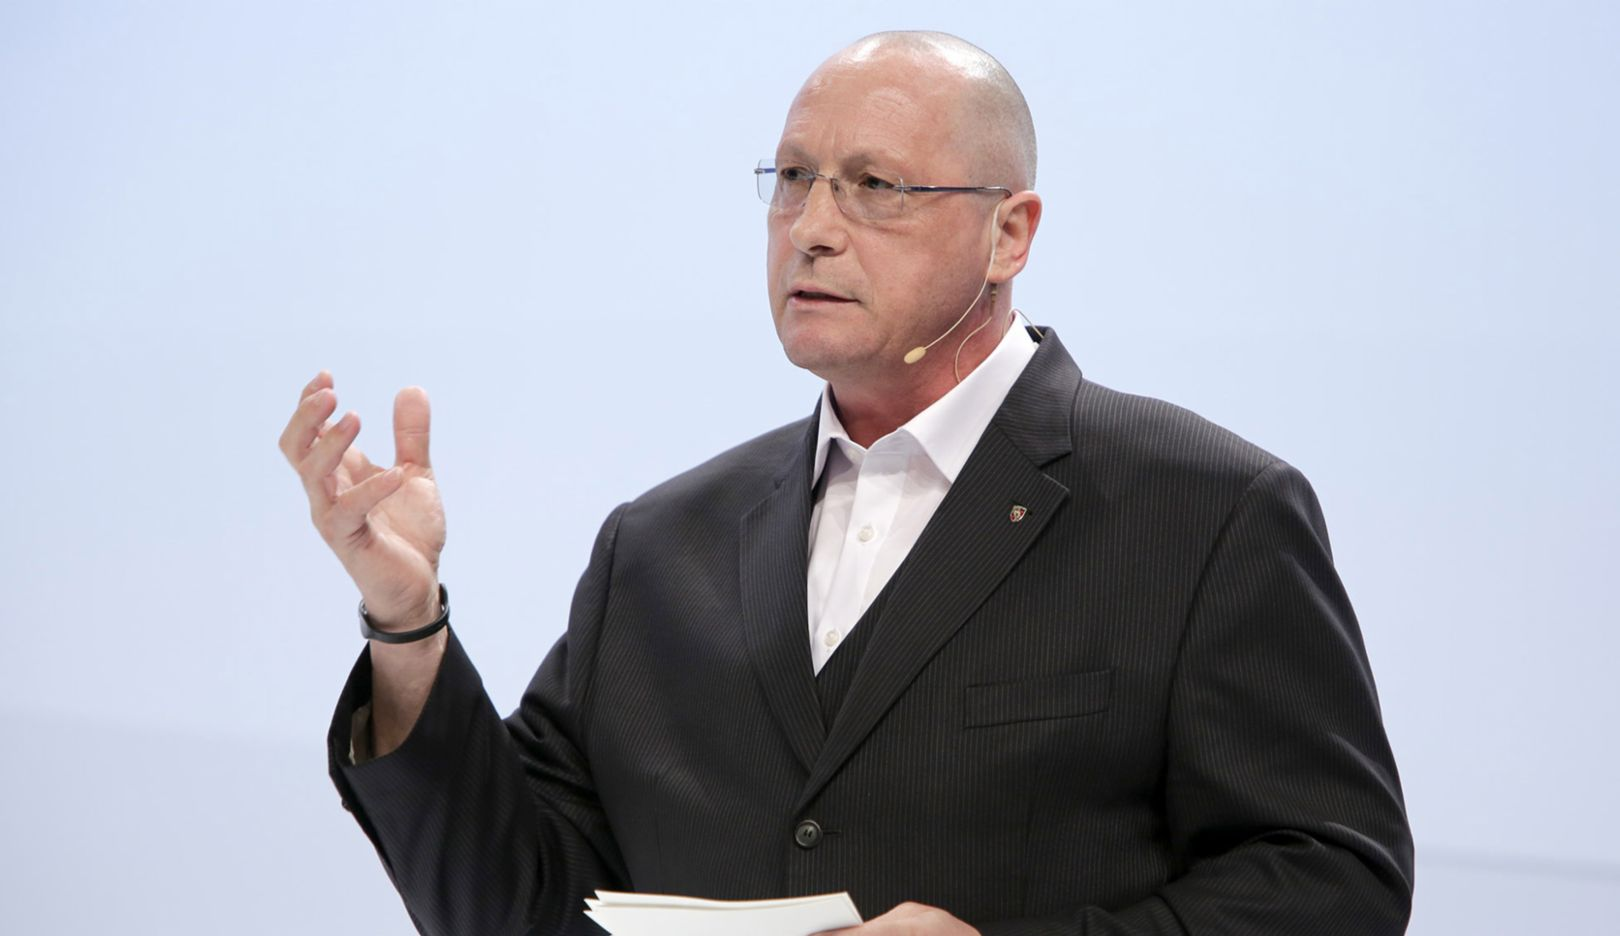 Uwe Hück, Chairman of the Group Works Council, 2015, Porsche AG